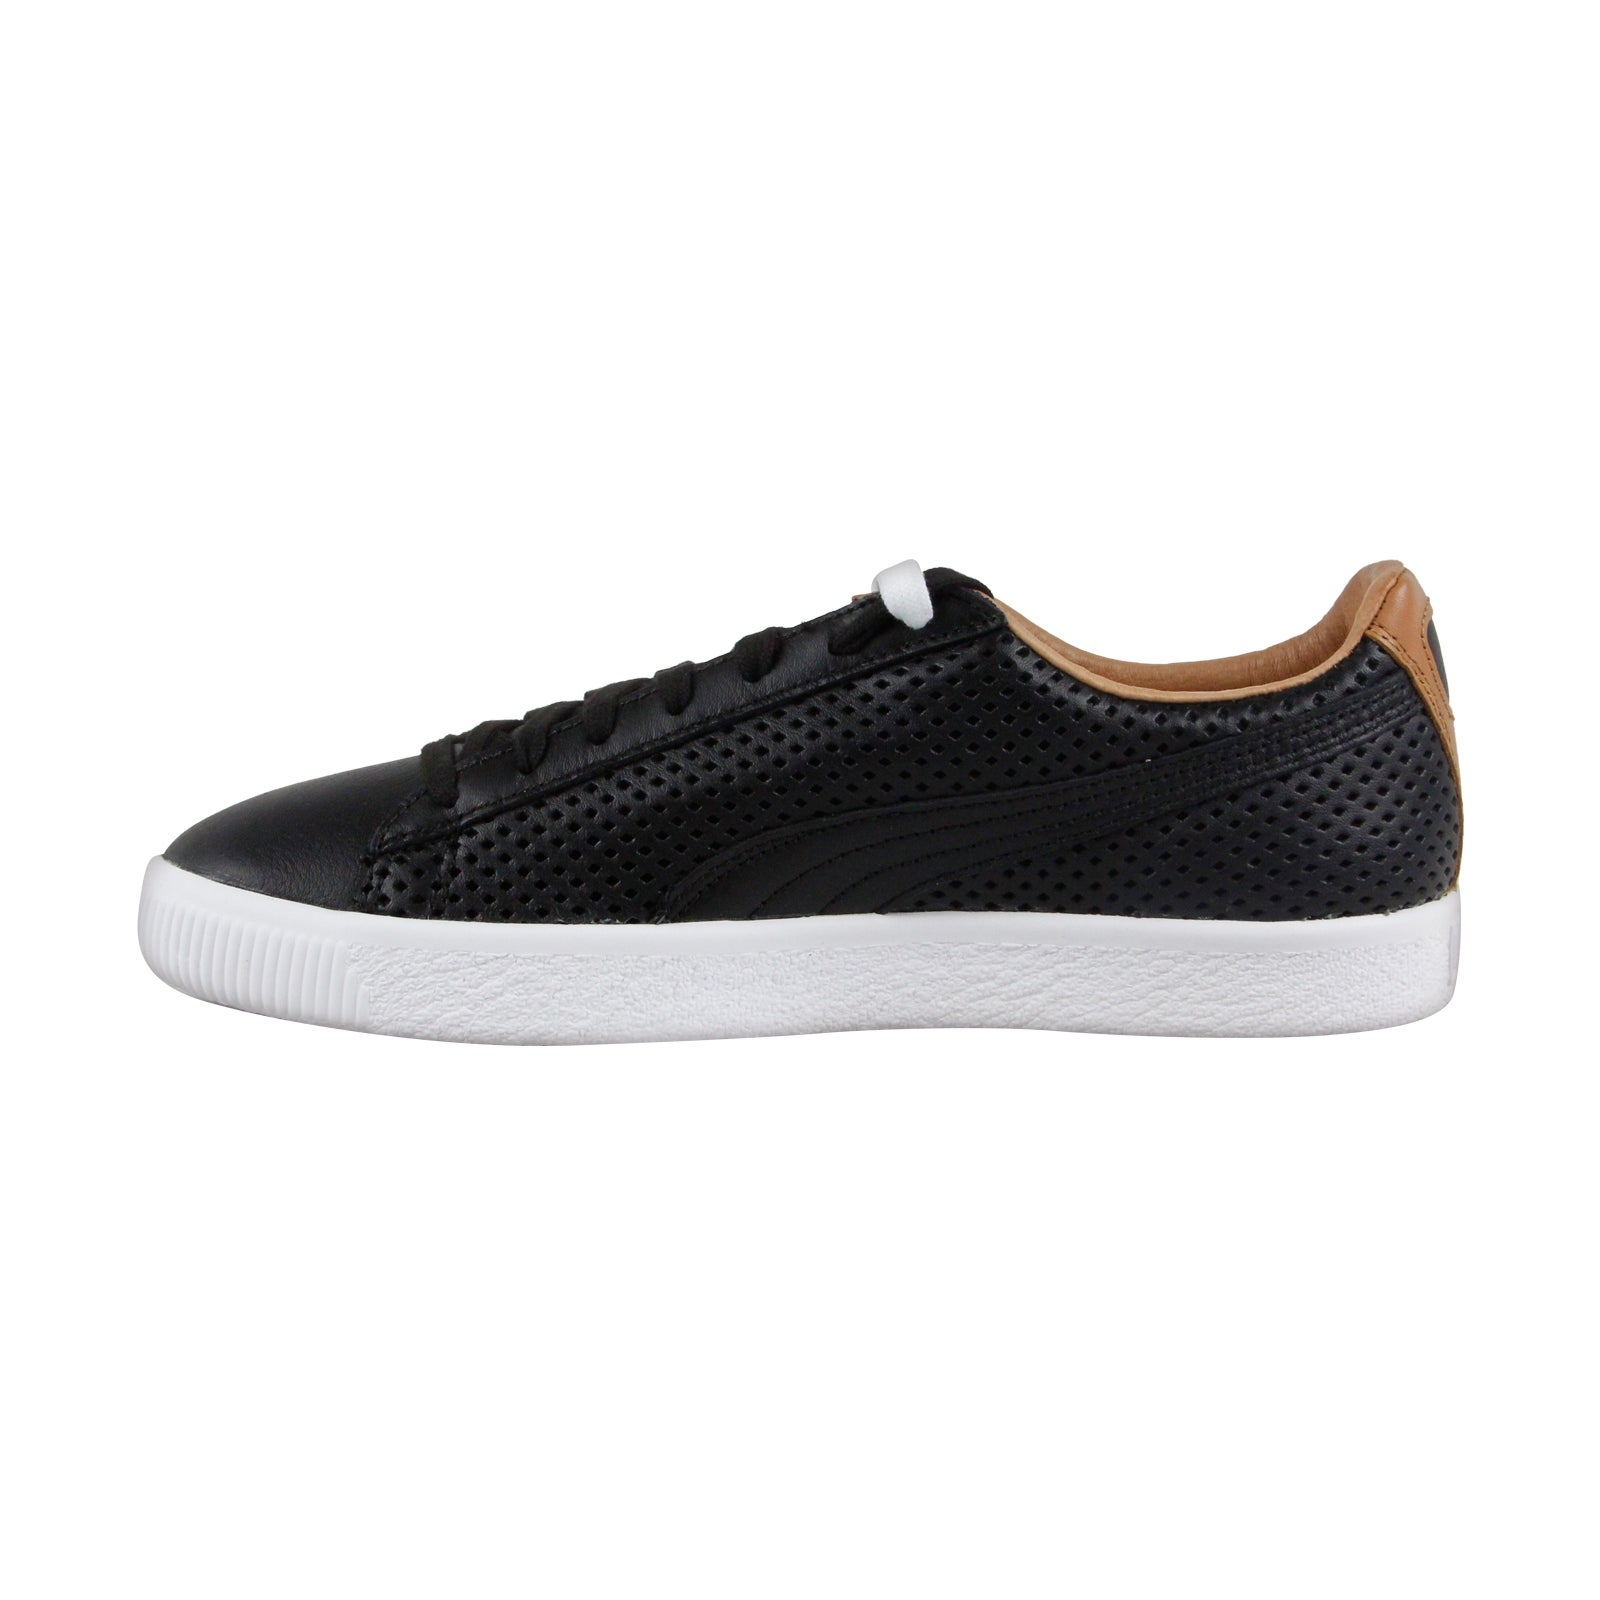 on sale d3bad 09233 Puma Clyde Colorblock 2 Mens Black Leather Lace Up Sneakers Shoes